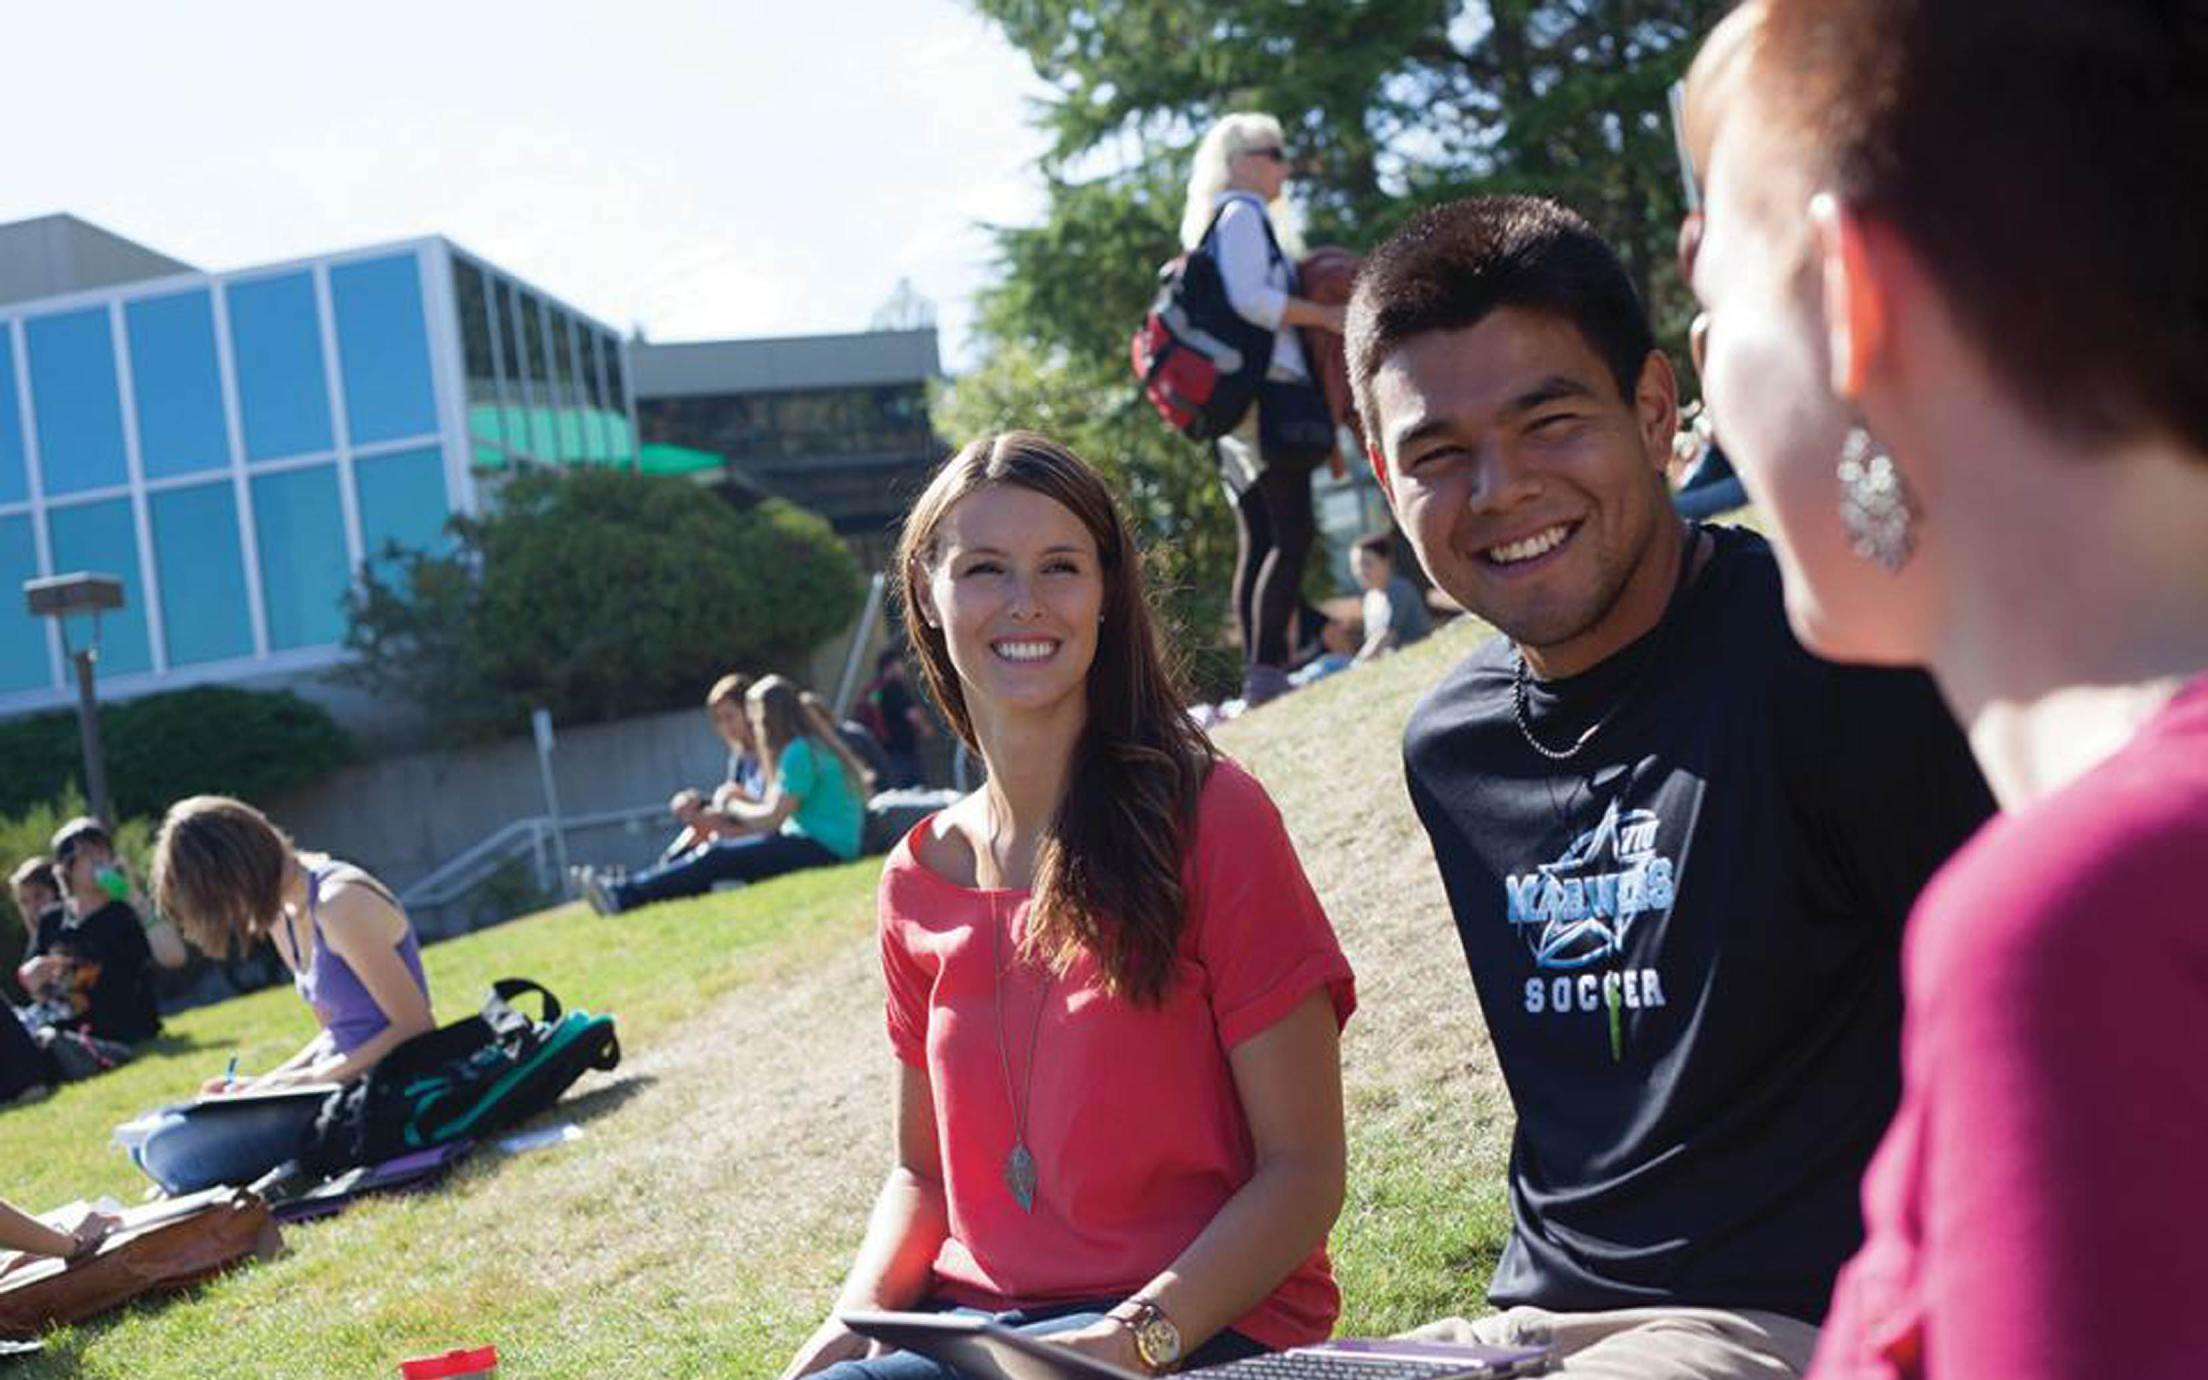 Students of the Diploma in Business Administration program enjoying some spare time at VIU's Nanaimo campus